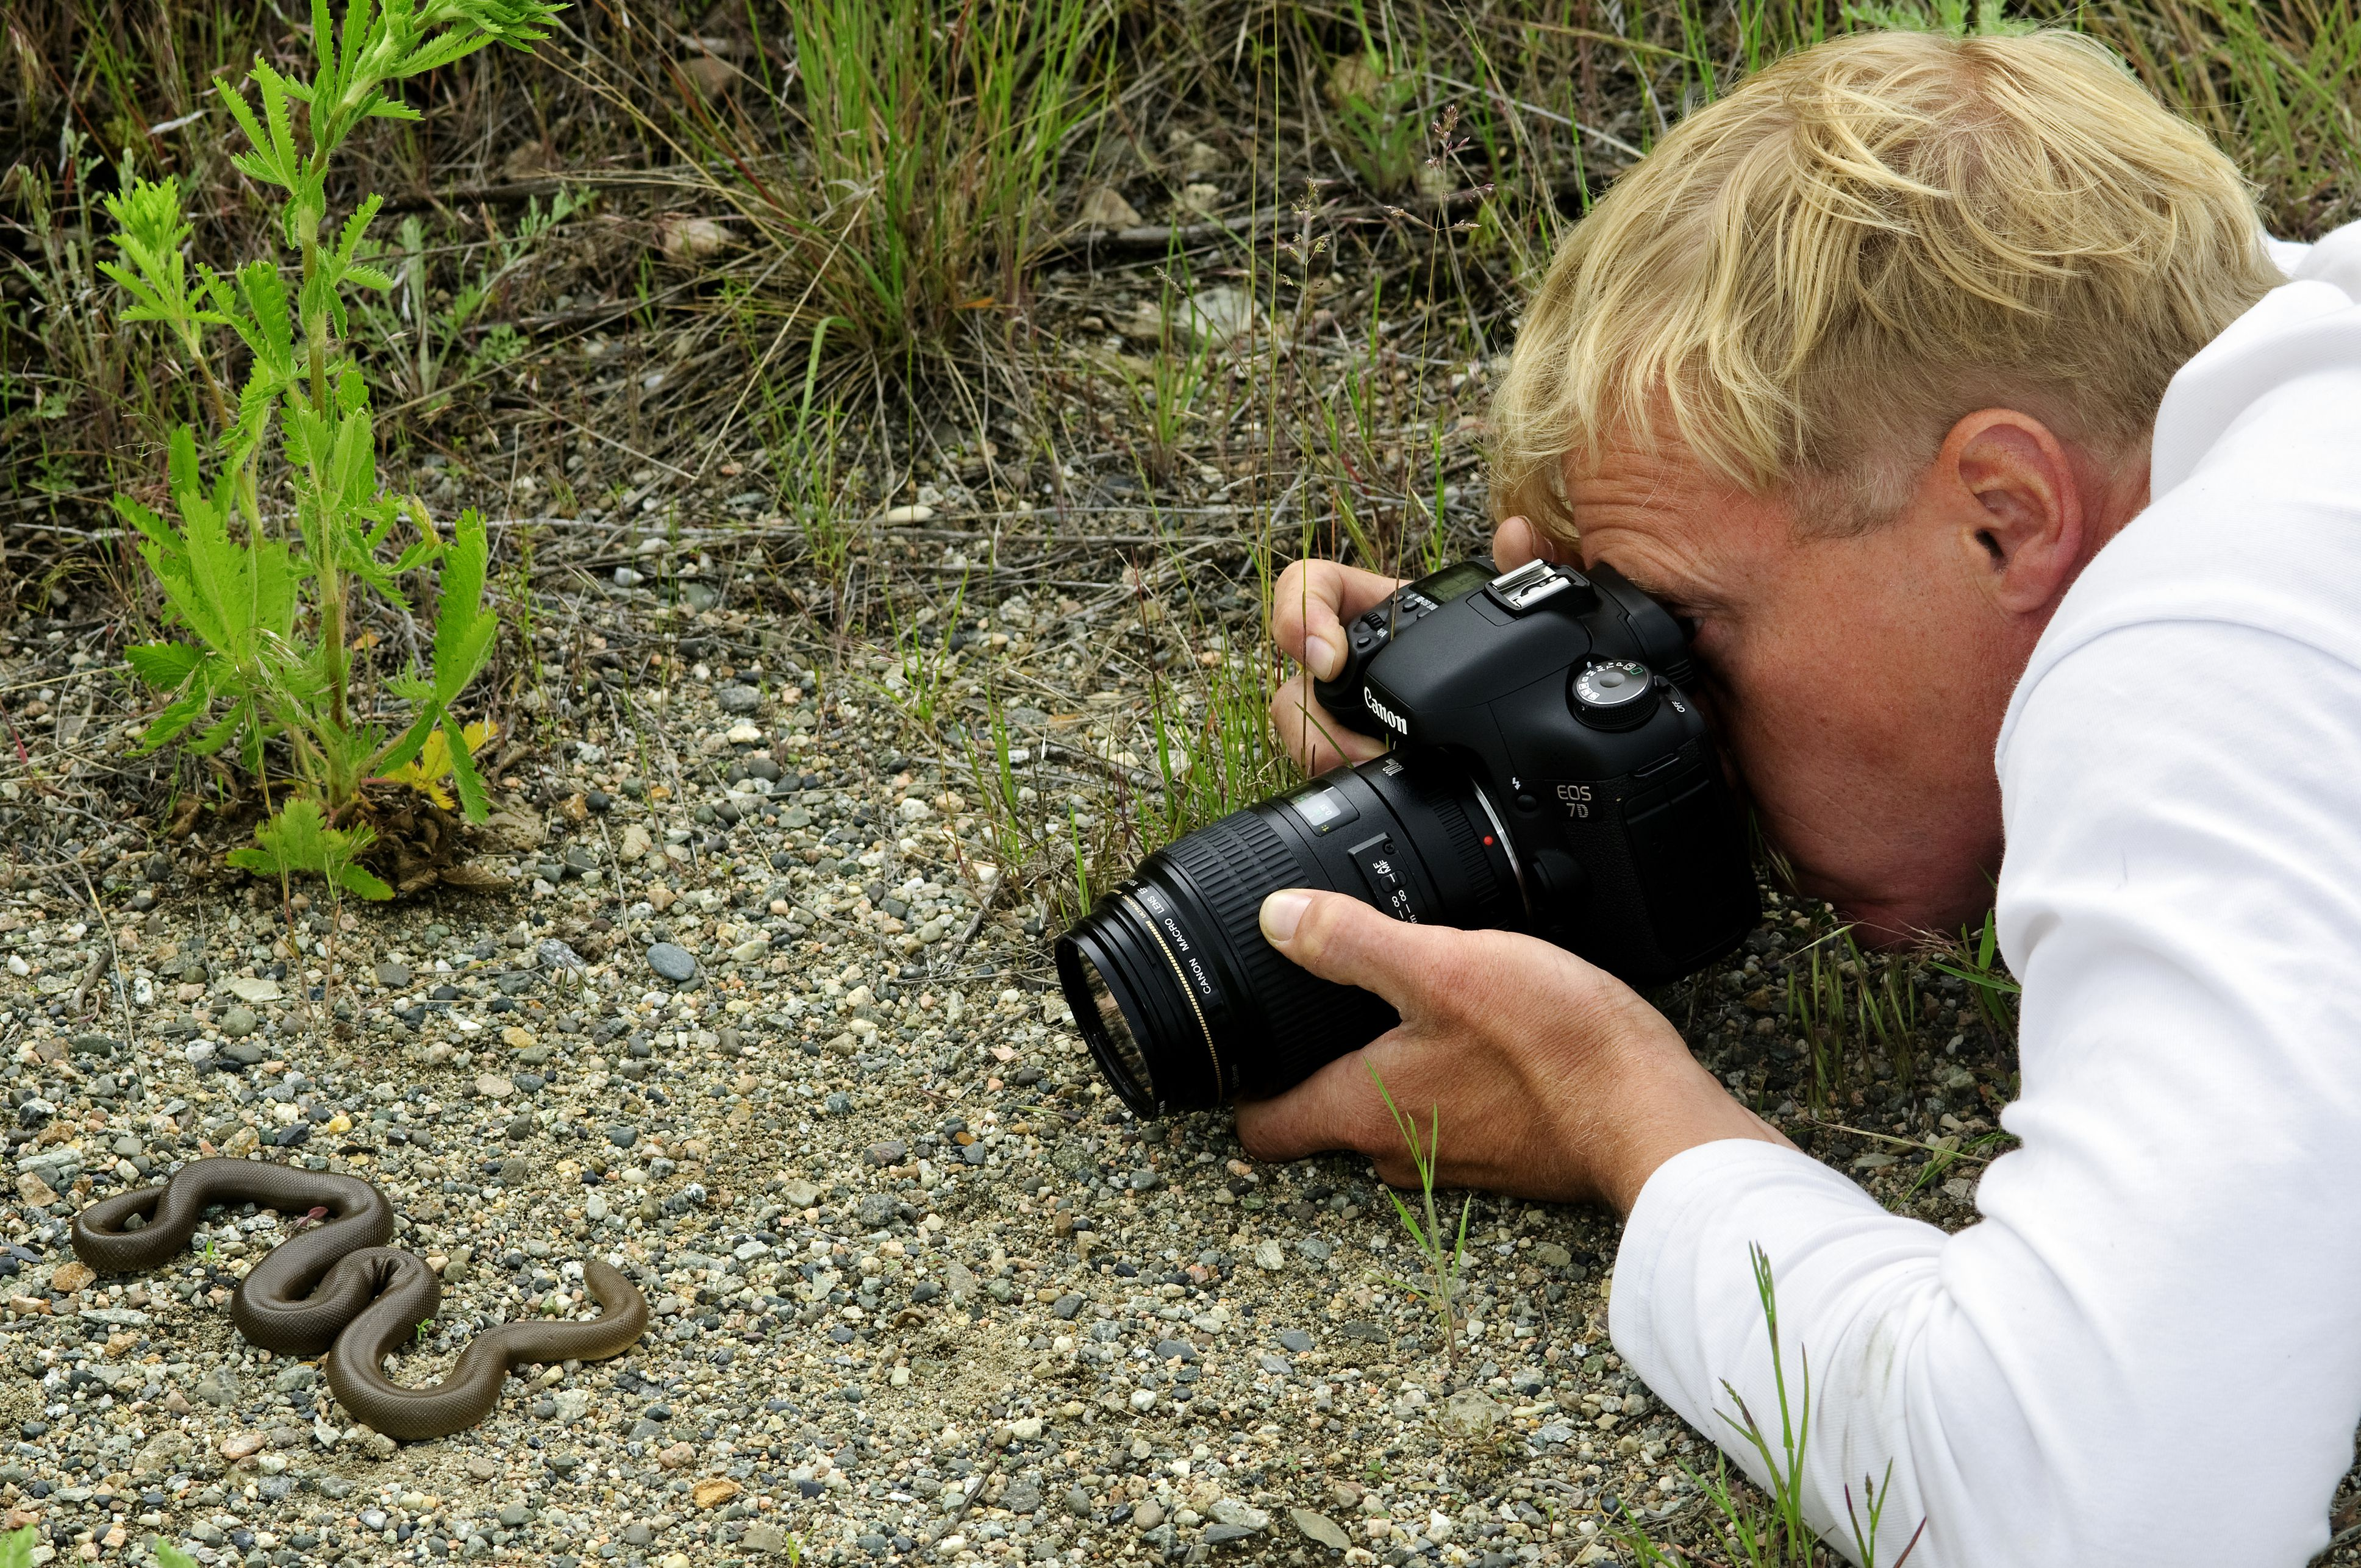 career profile of wildlife biologists